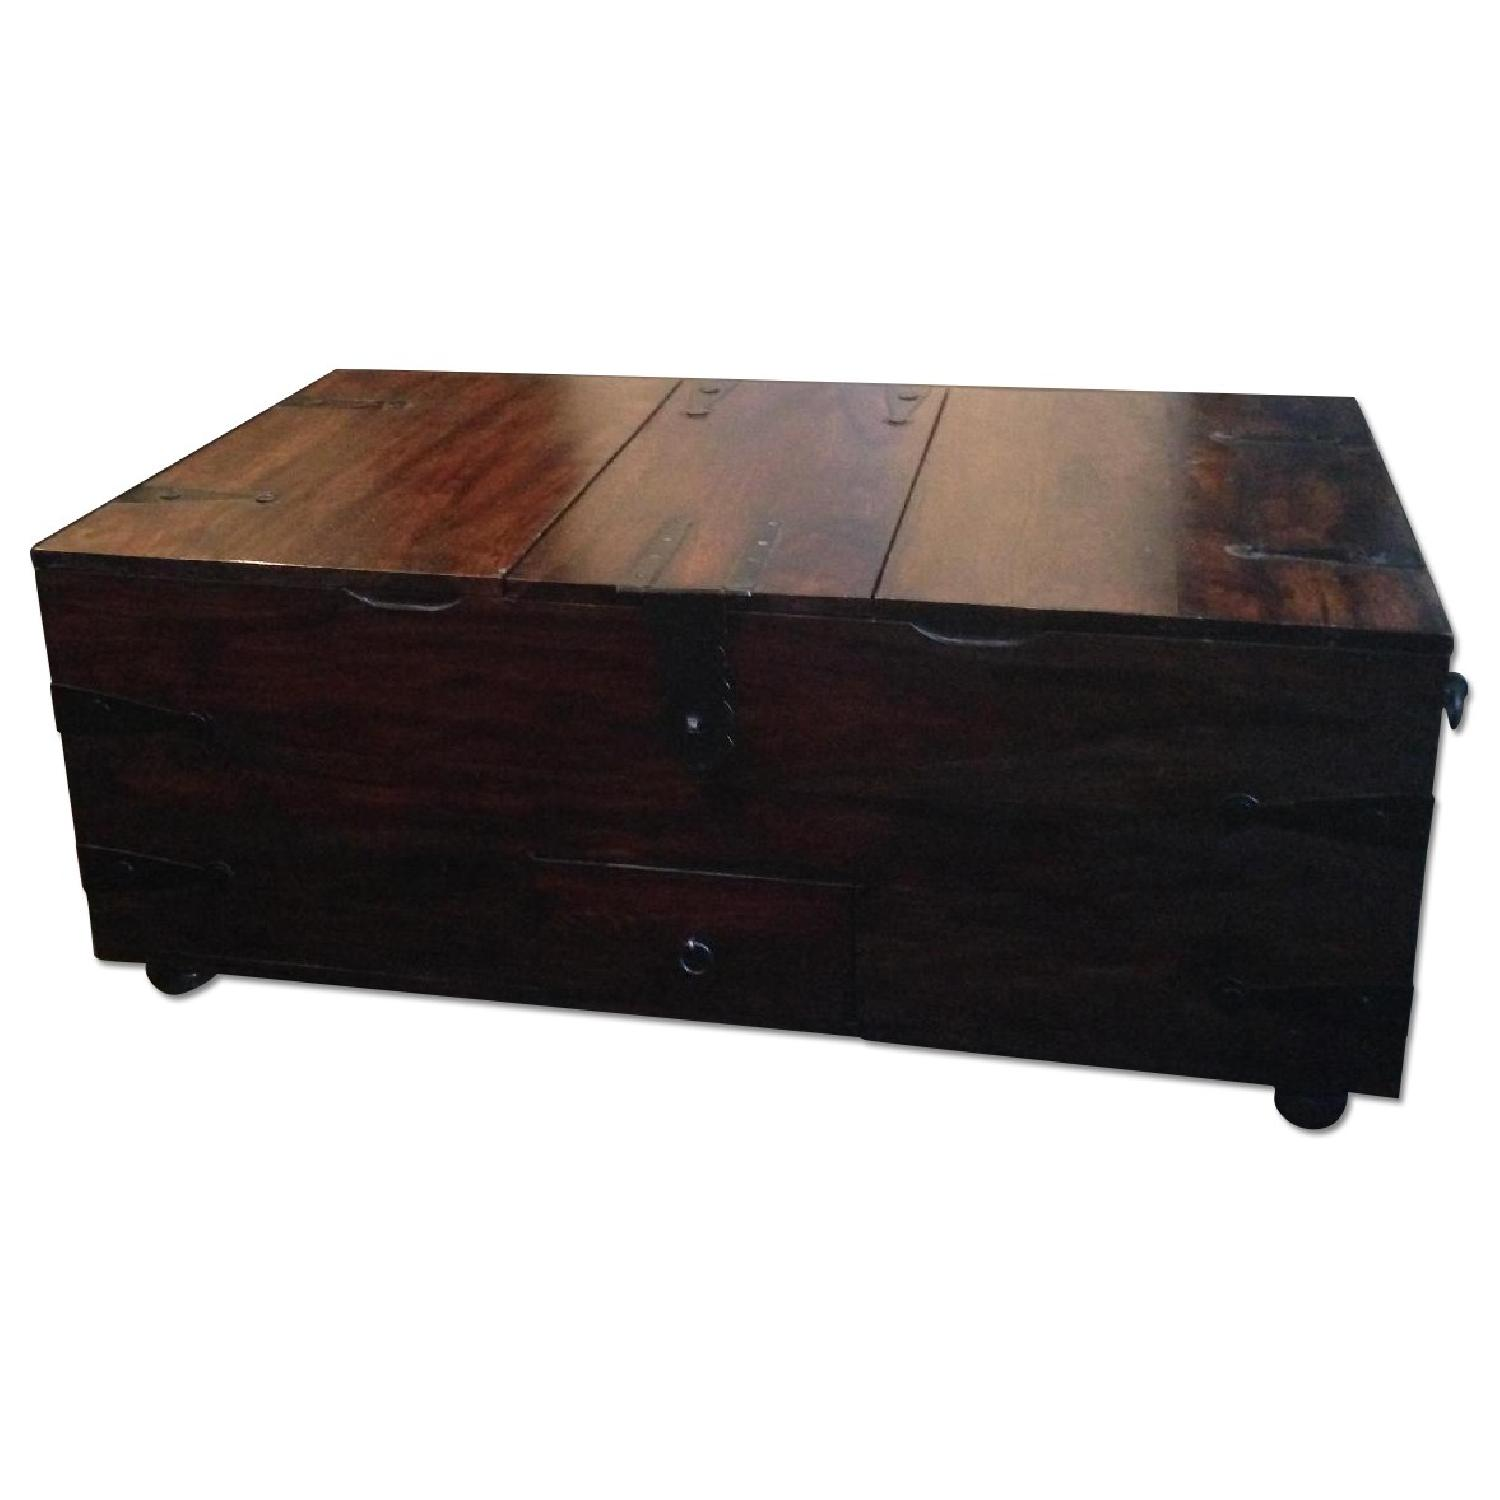 William Sheppee USA Solid Wood Trunk Coffee Table - image-0